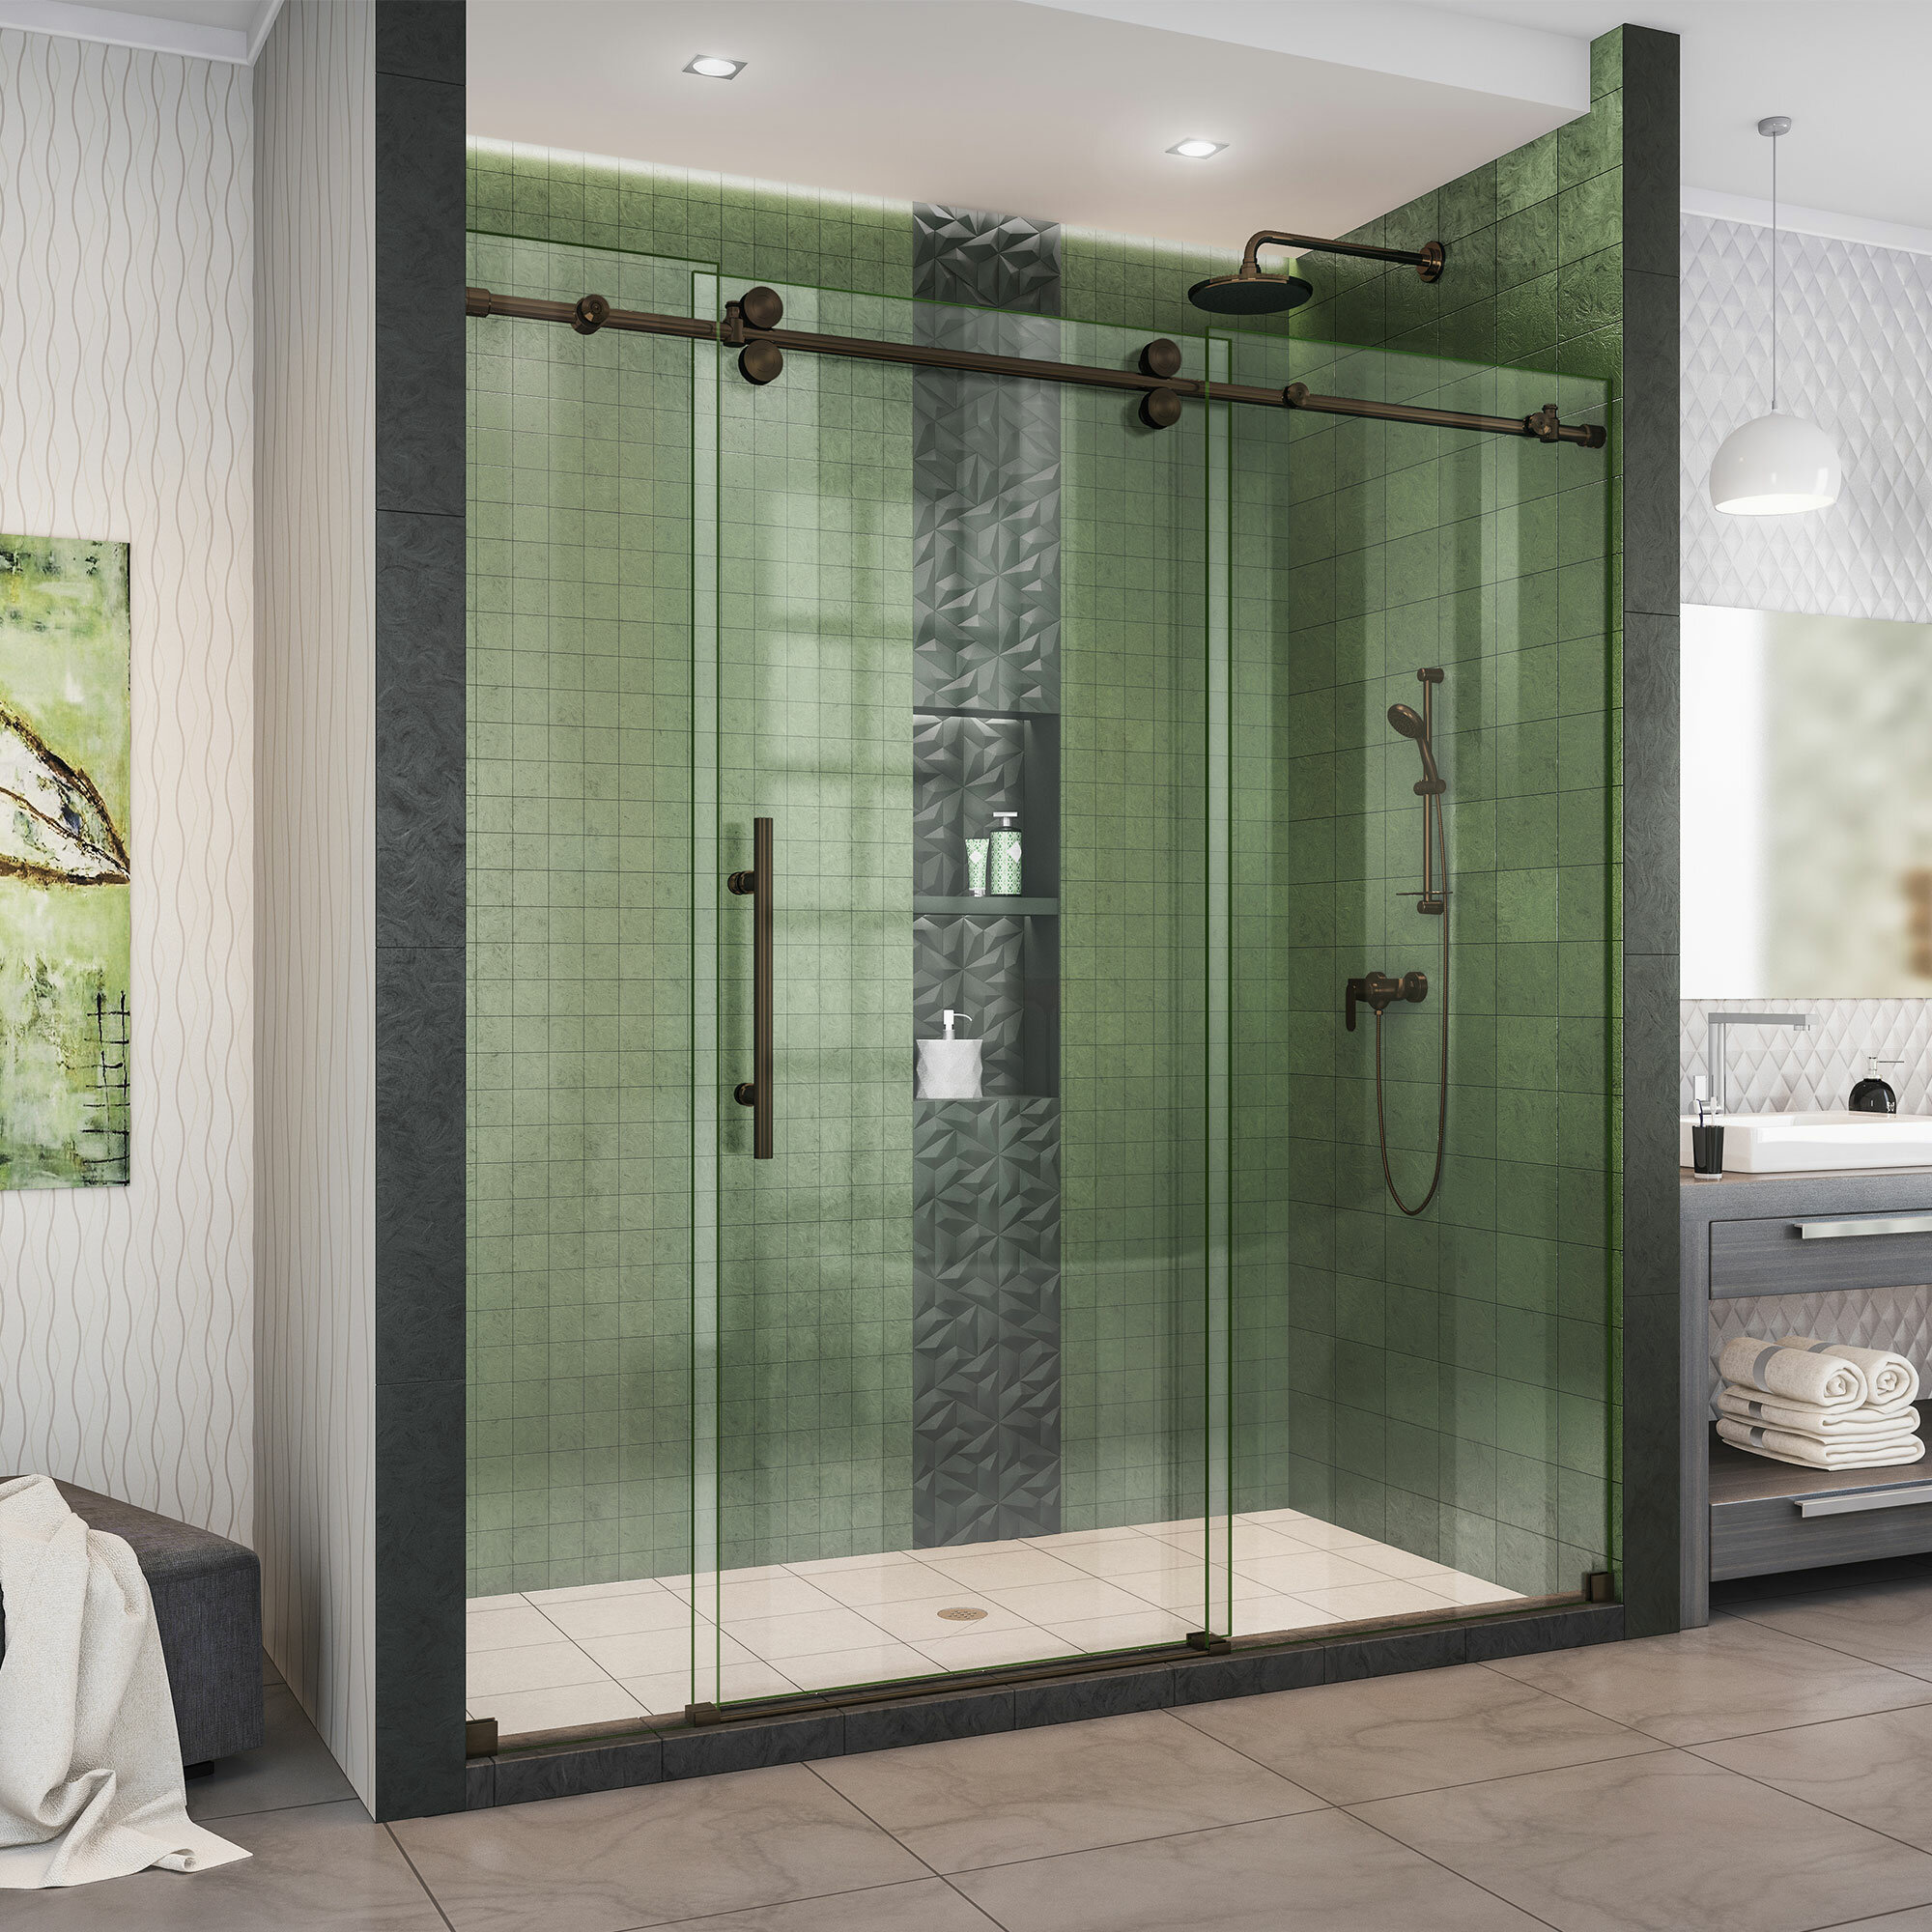 Enigma Xo 48 X 76 Sliding Frameless Shower Door With Clearmax Technology